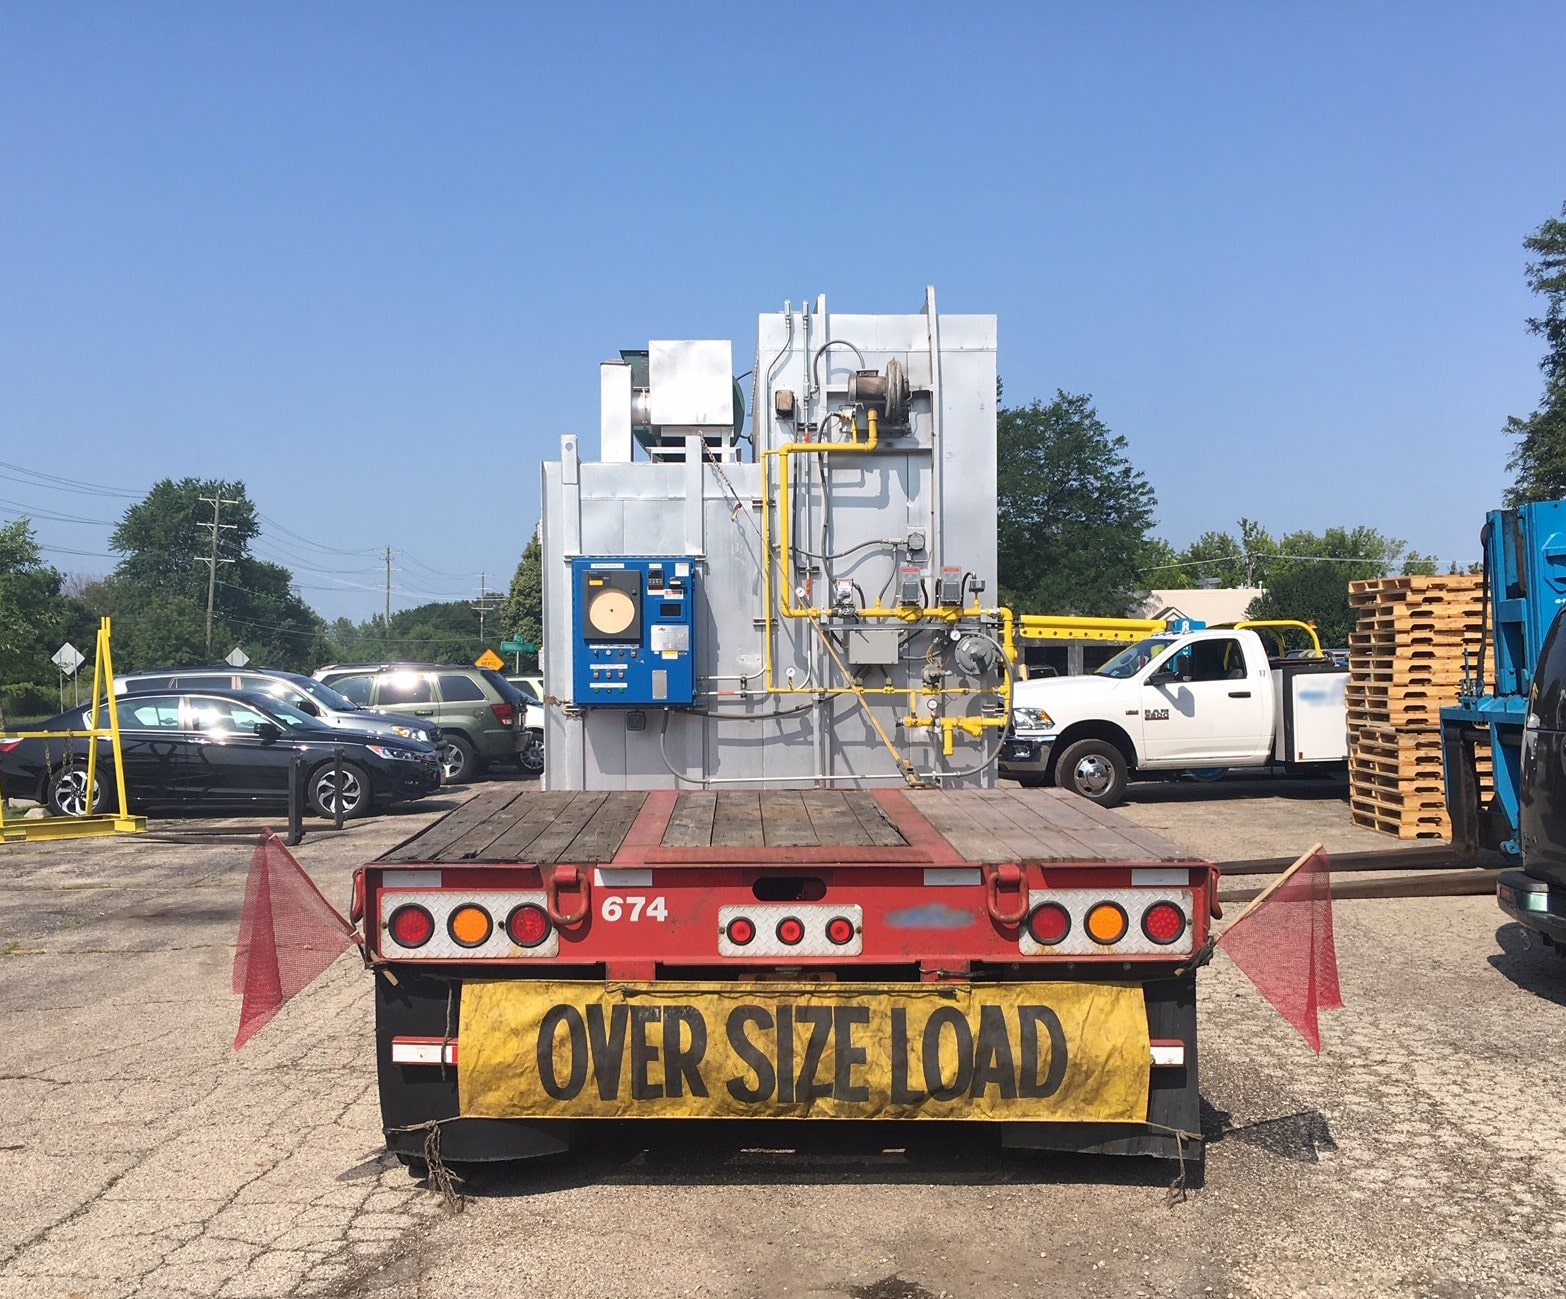 How to ship oversize loads with permits in the domestic USA